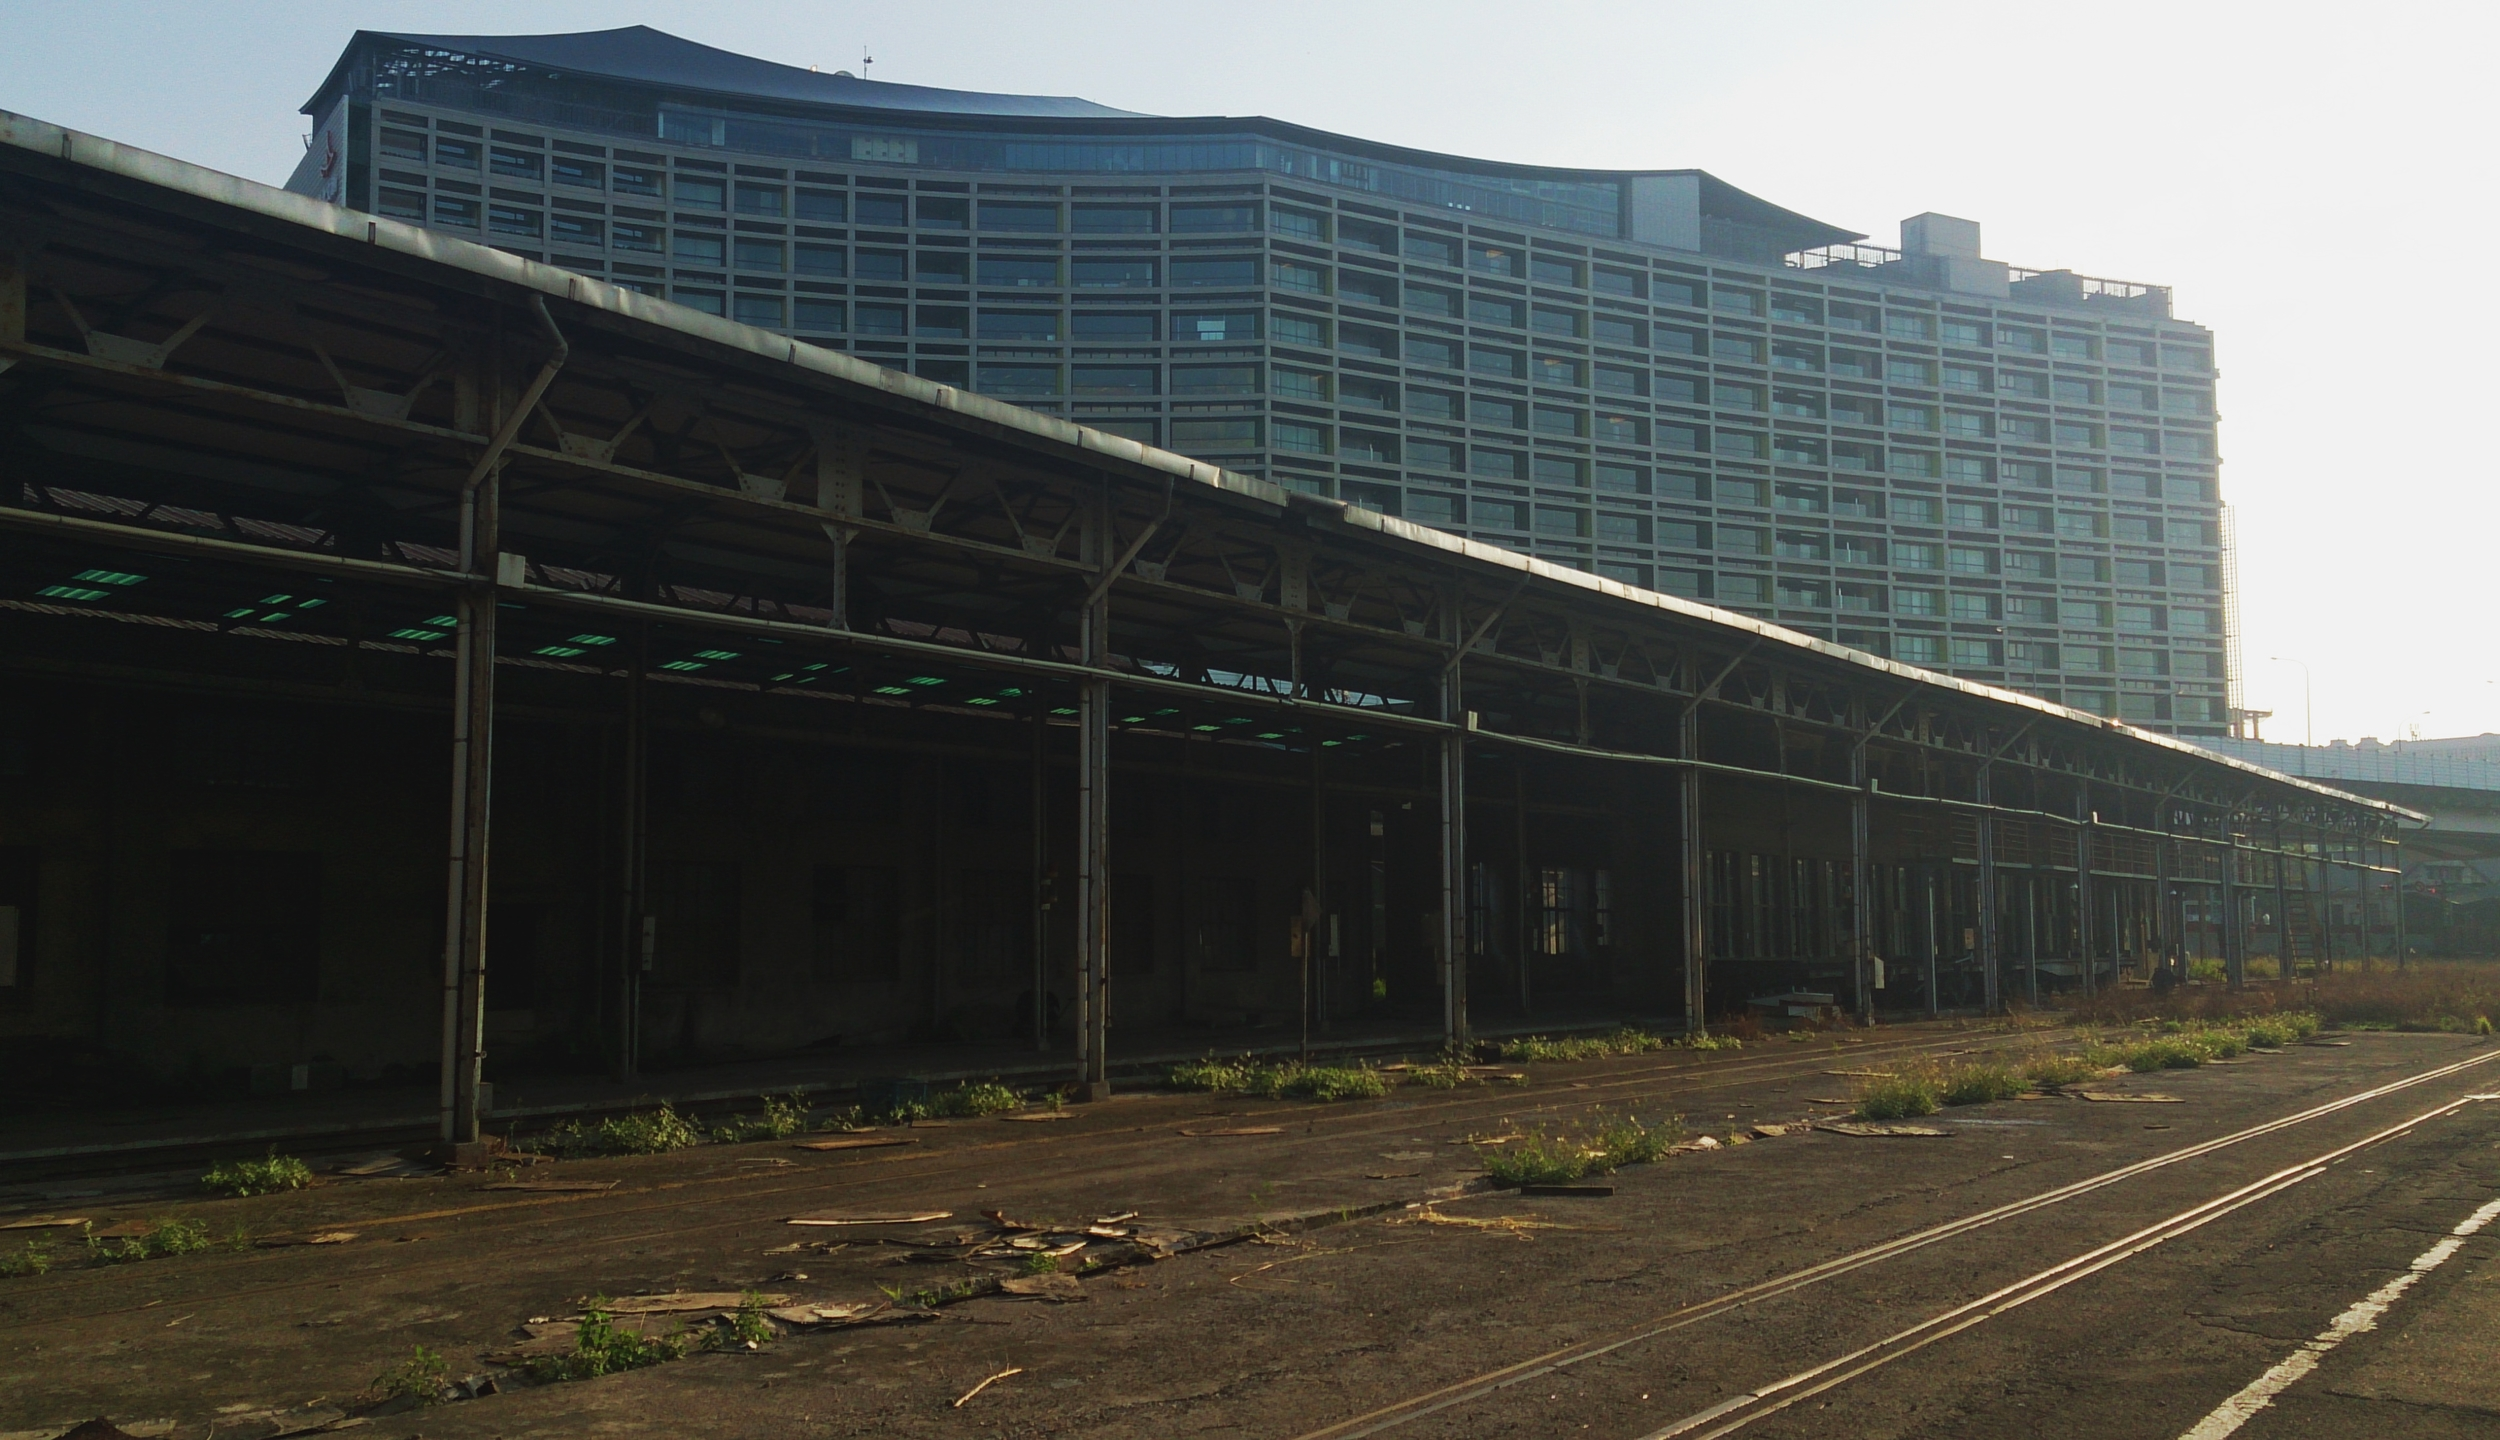 Abandoned sidings with the new Eslite building at Songshan Tobacco Factory behind.